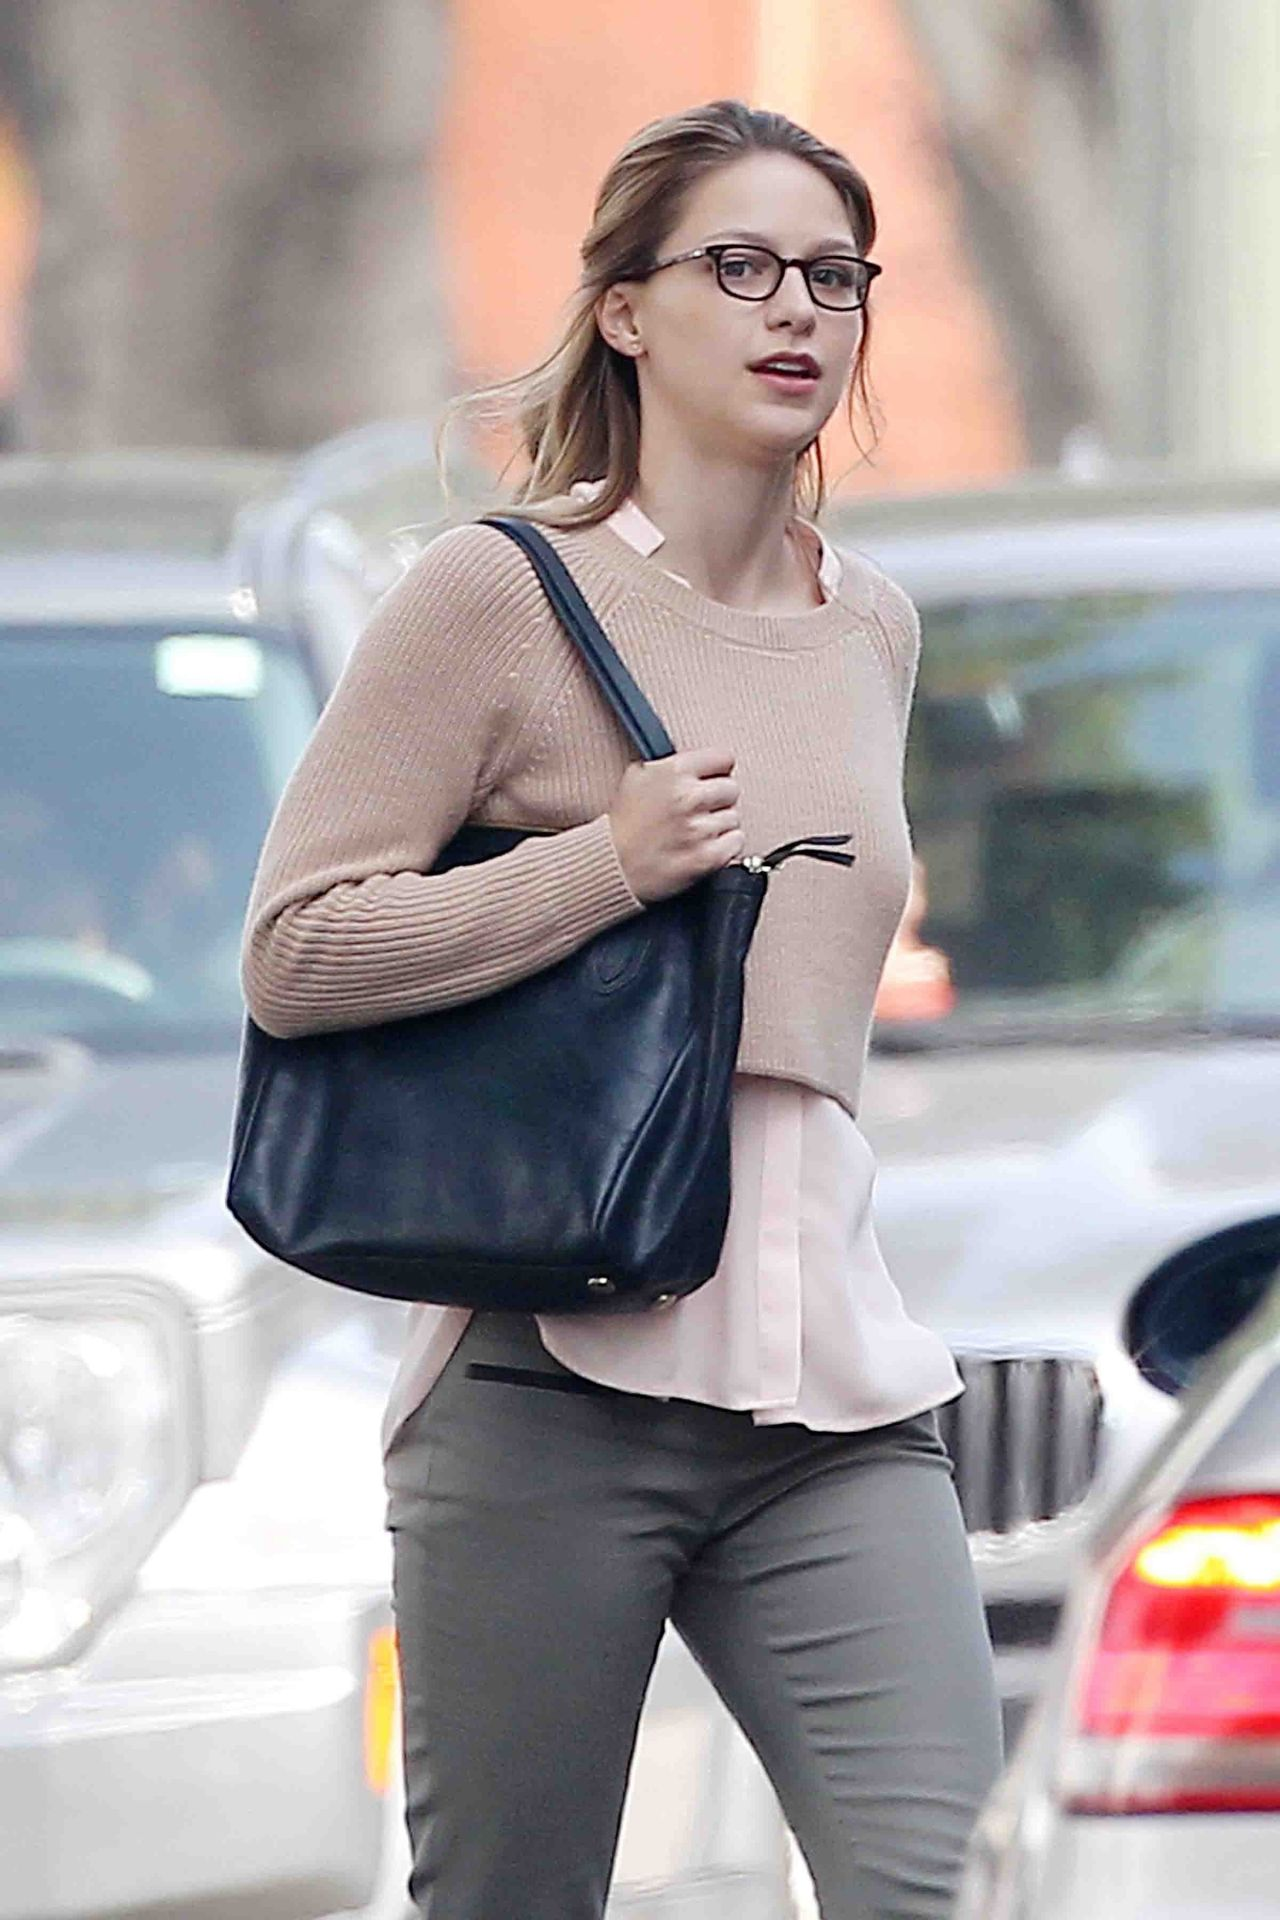 Melissa Benoist - On the Set of Supergirl in Los Angeles, March 2015